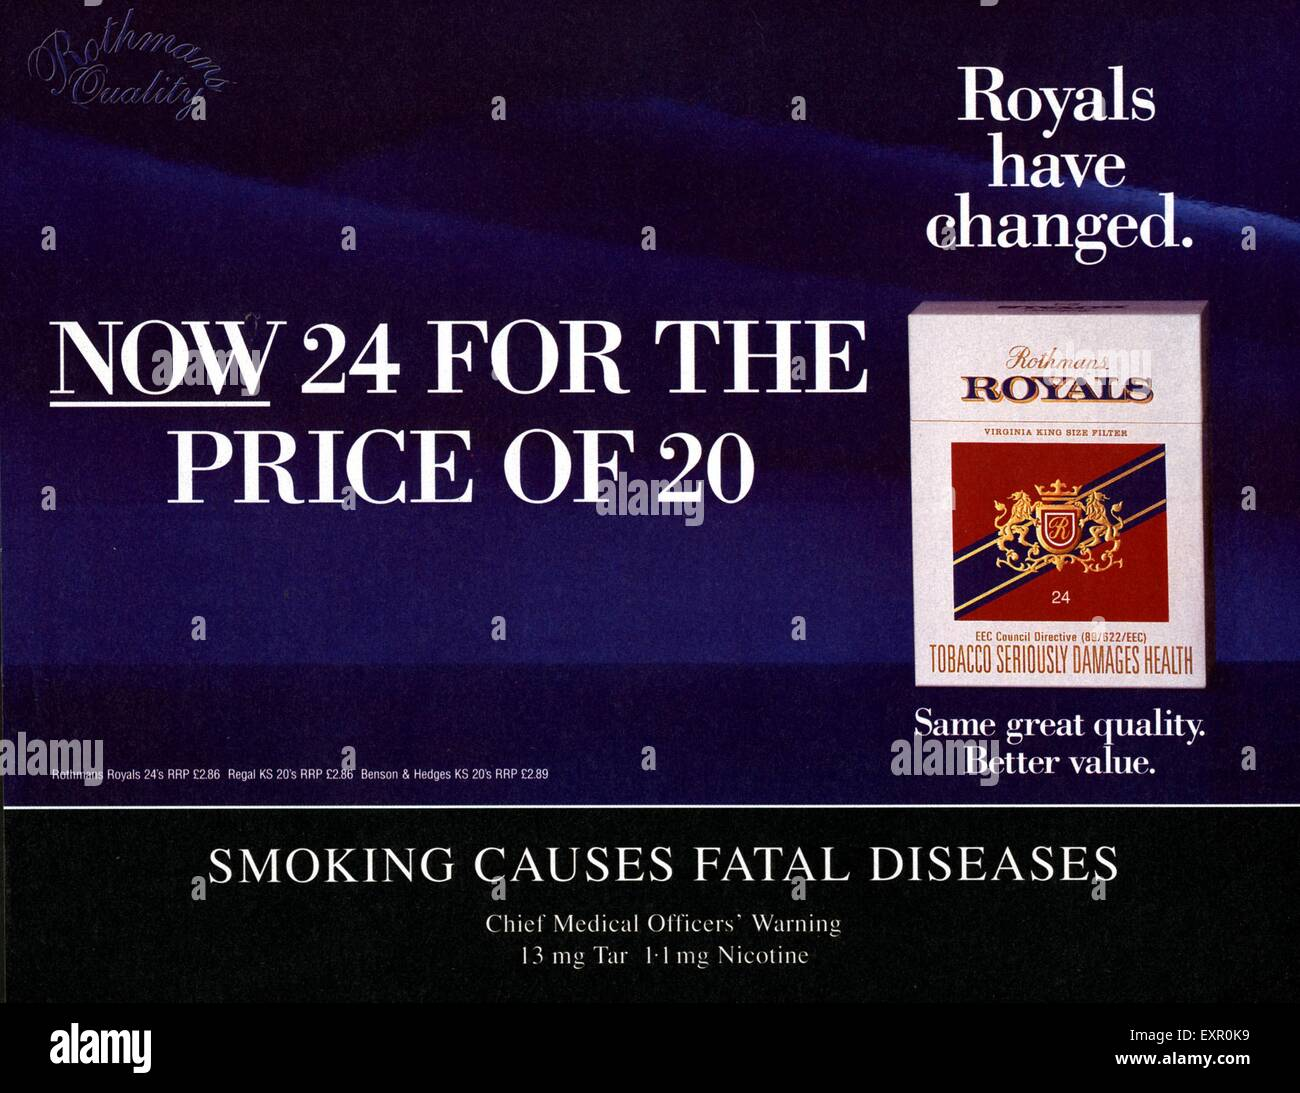 1990s UK Rothmans Royals Magazine Advert - Stock Image